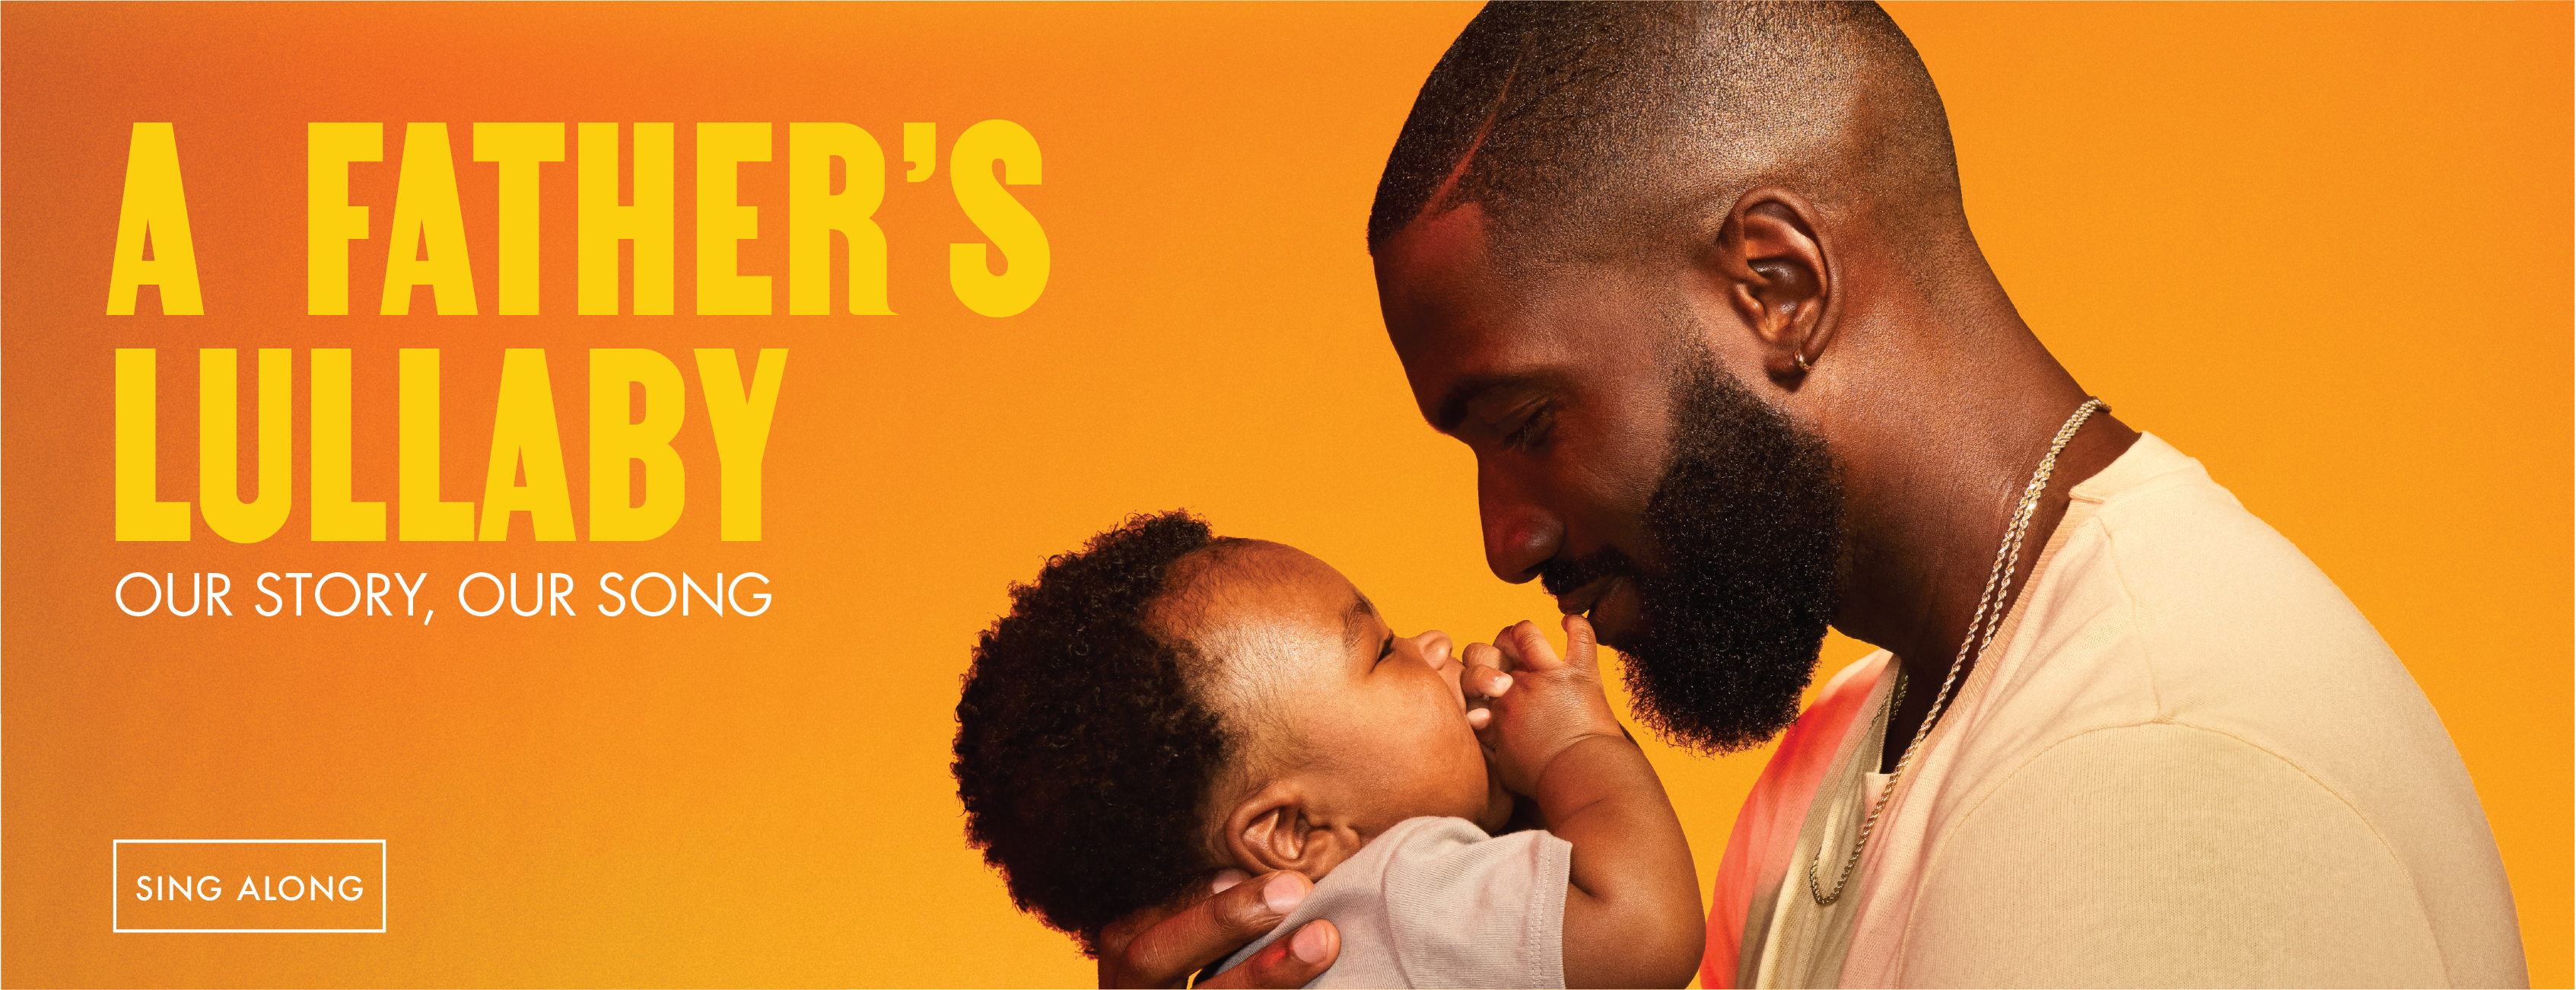 SheaMoisture fathers day song